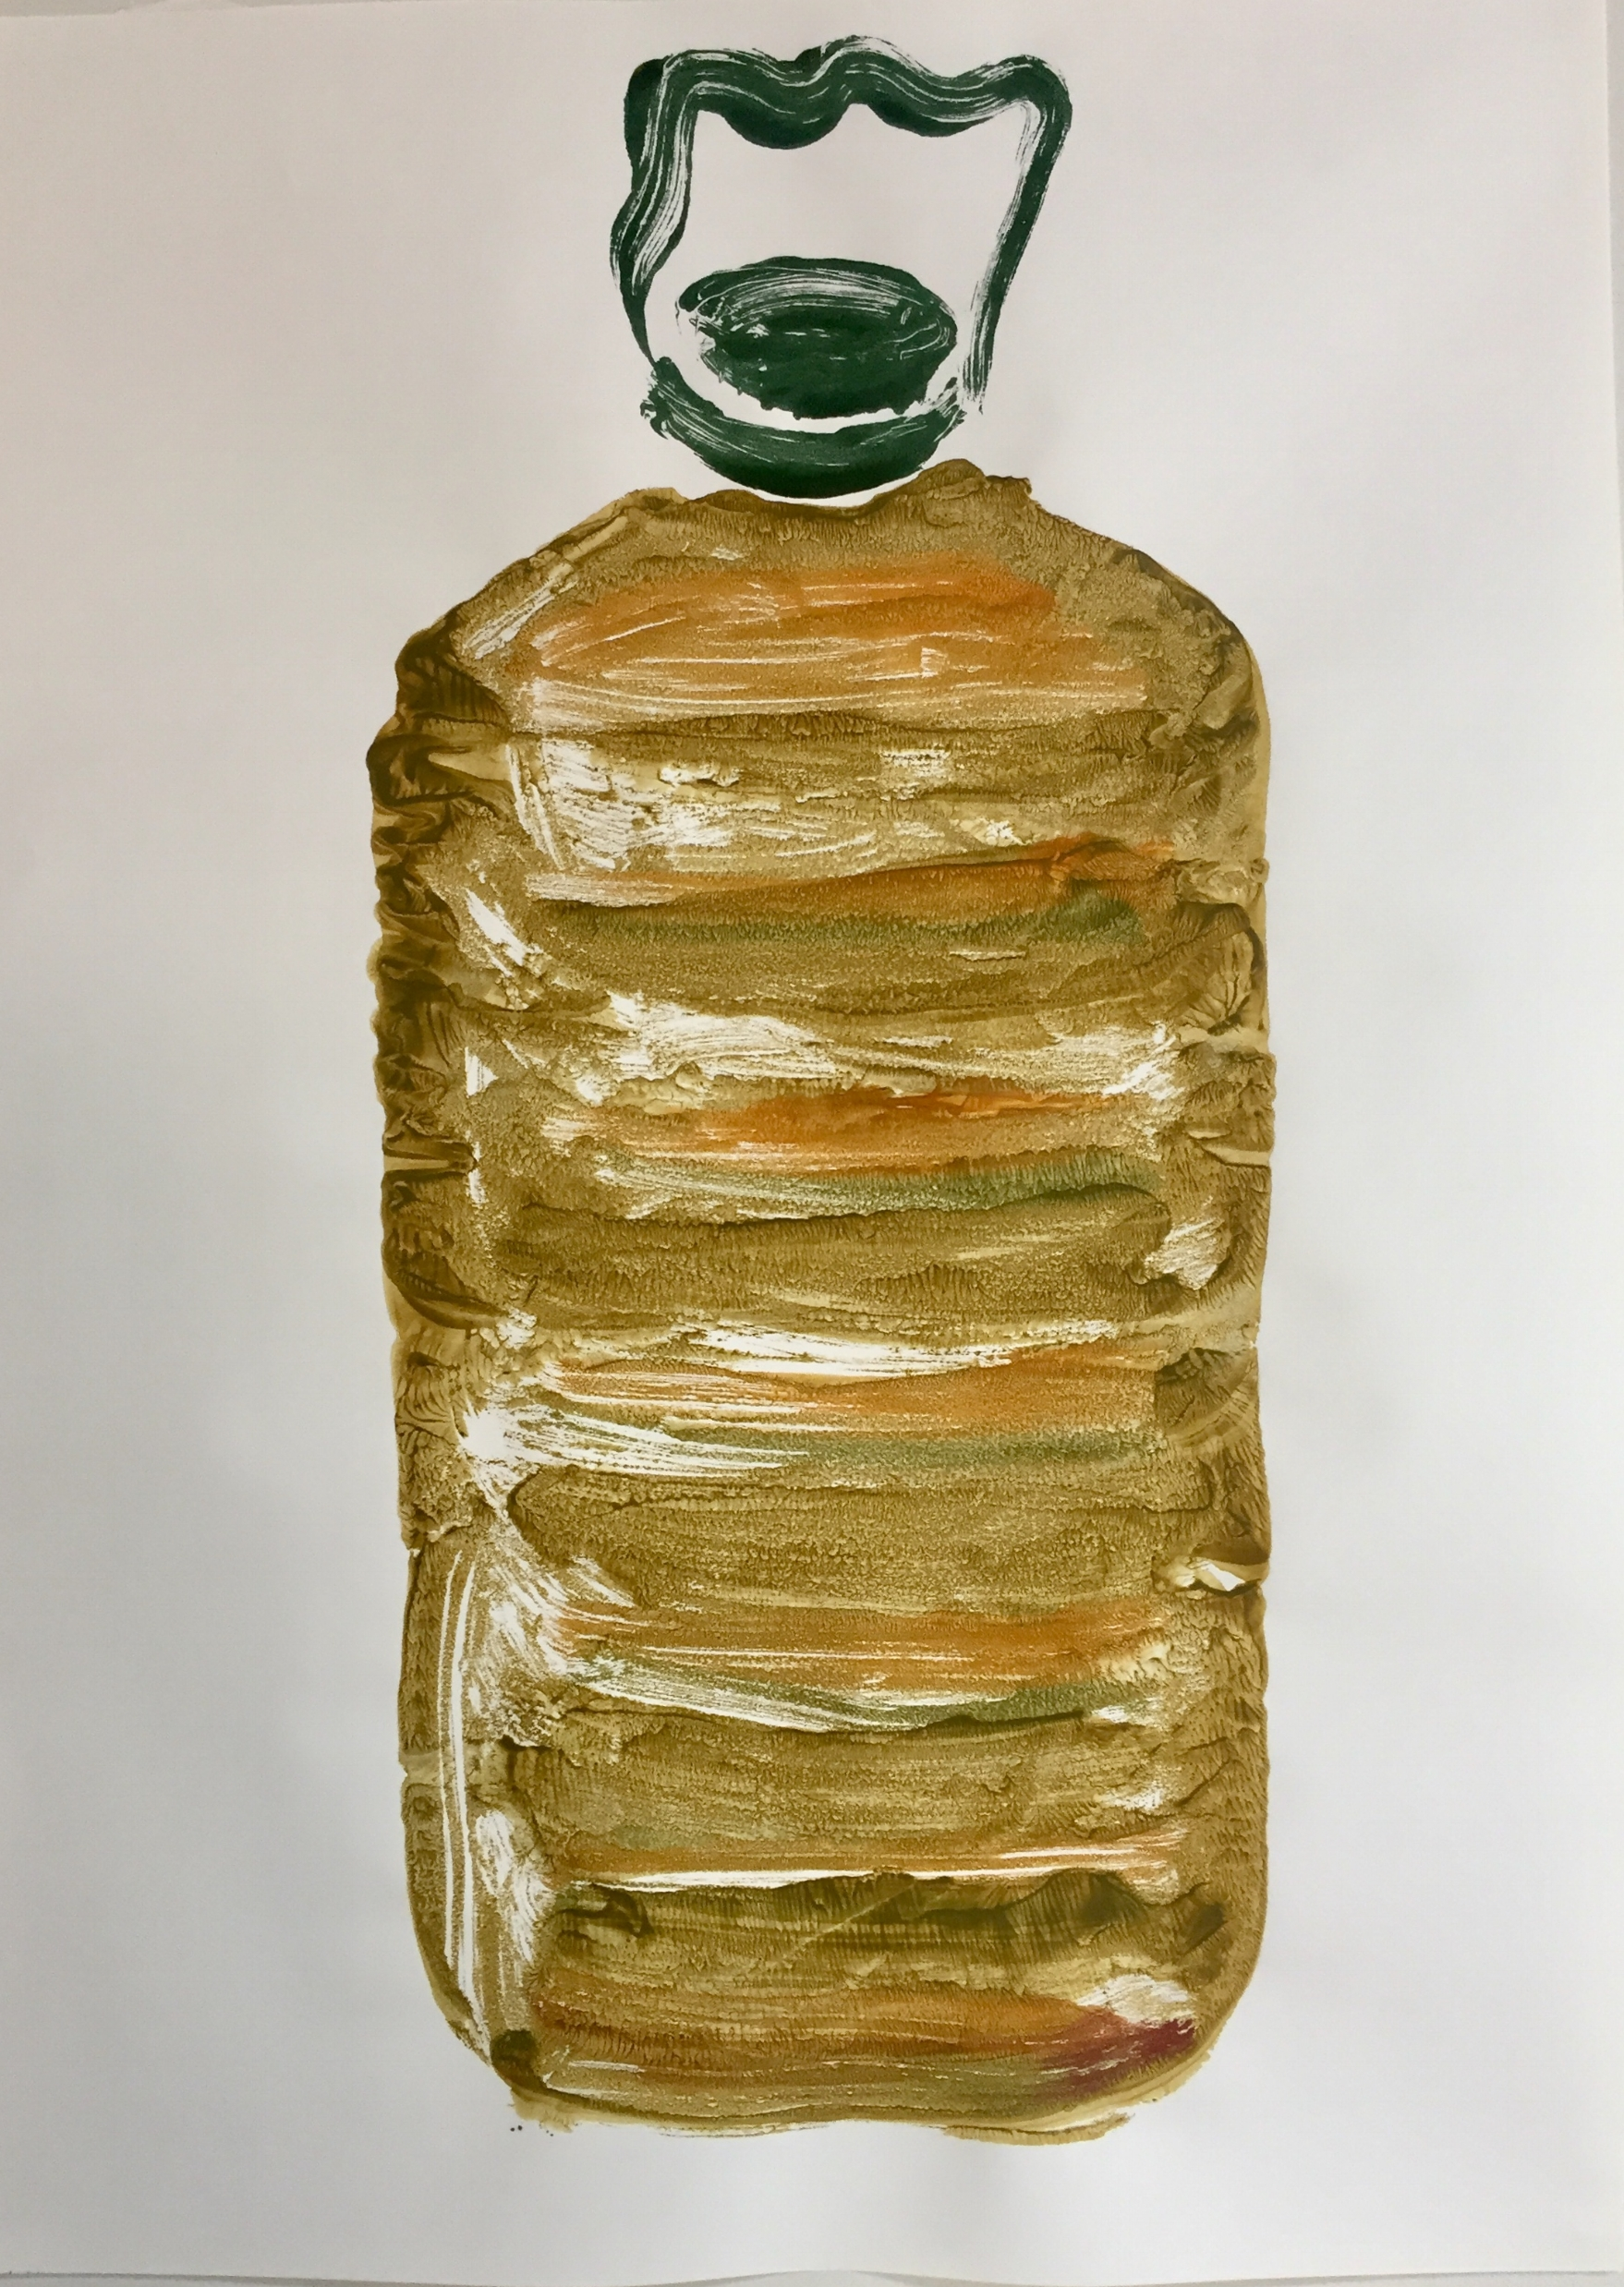 'The Kindness of Strangers': the gift of 5L of extra-virgin organic olive oil. (Mono-print on paper).